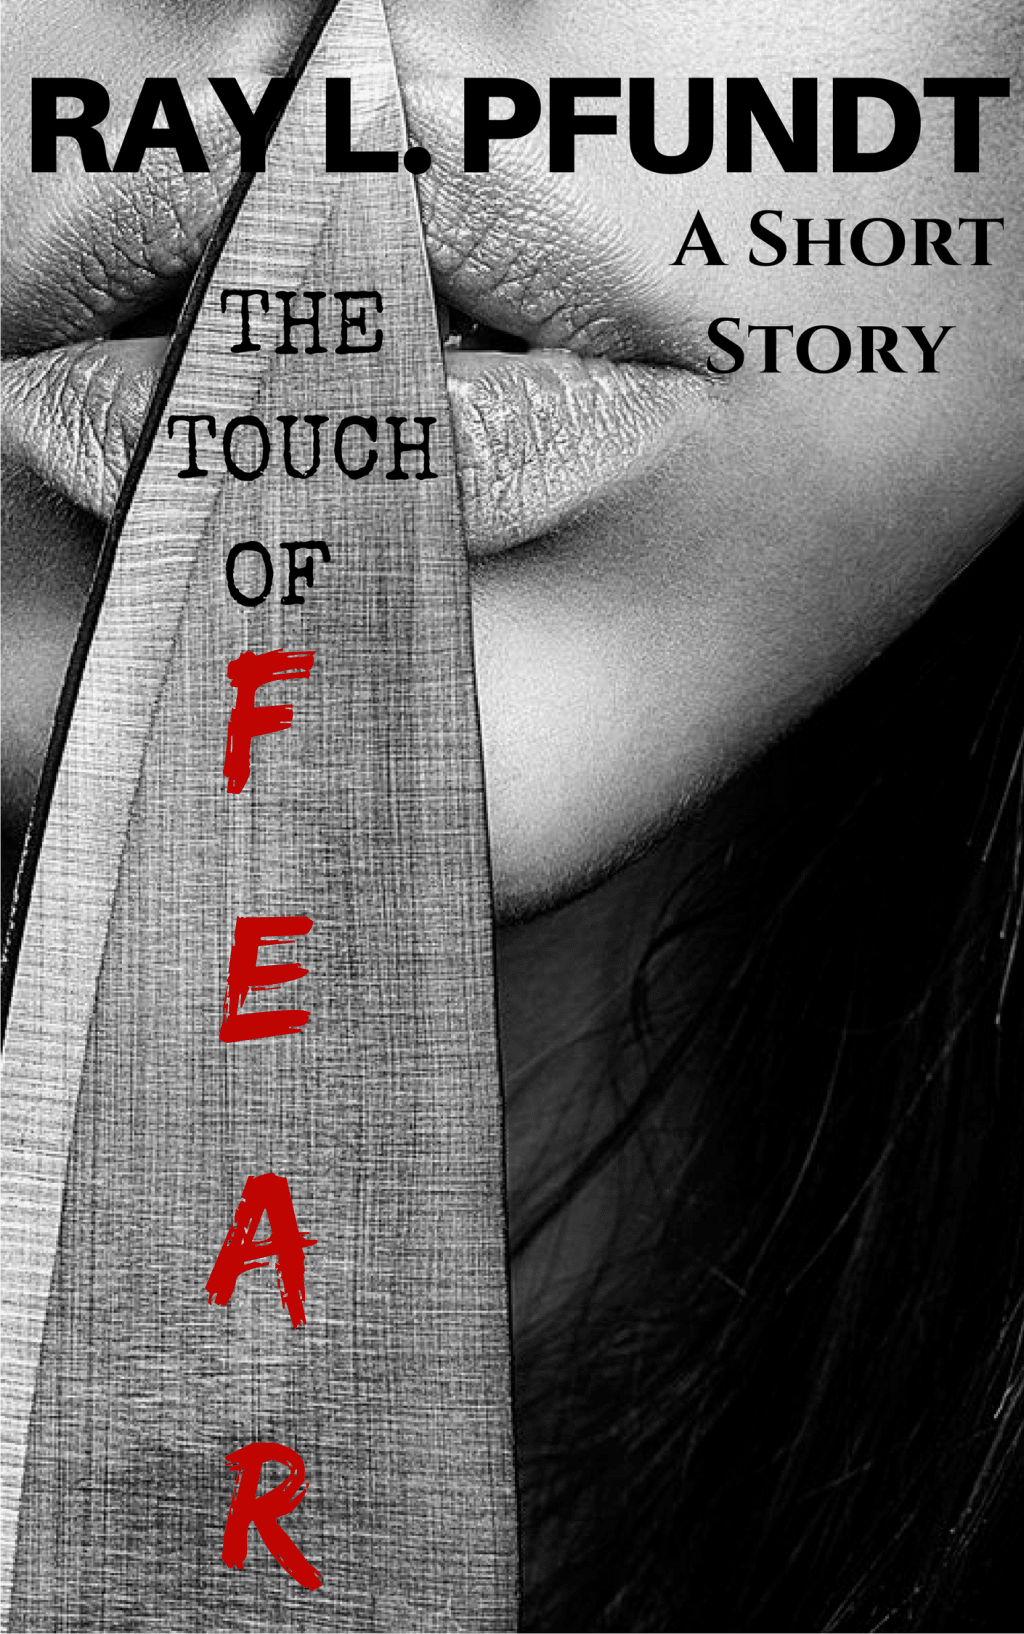 The Touch of Fear